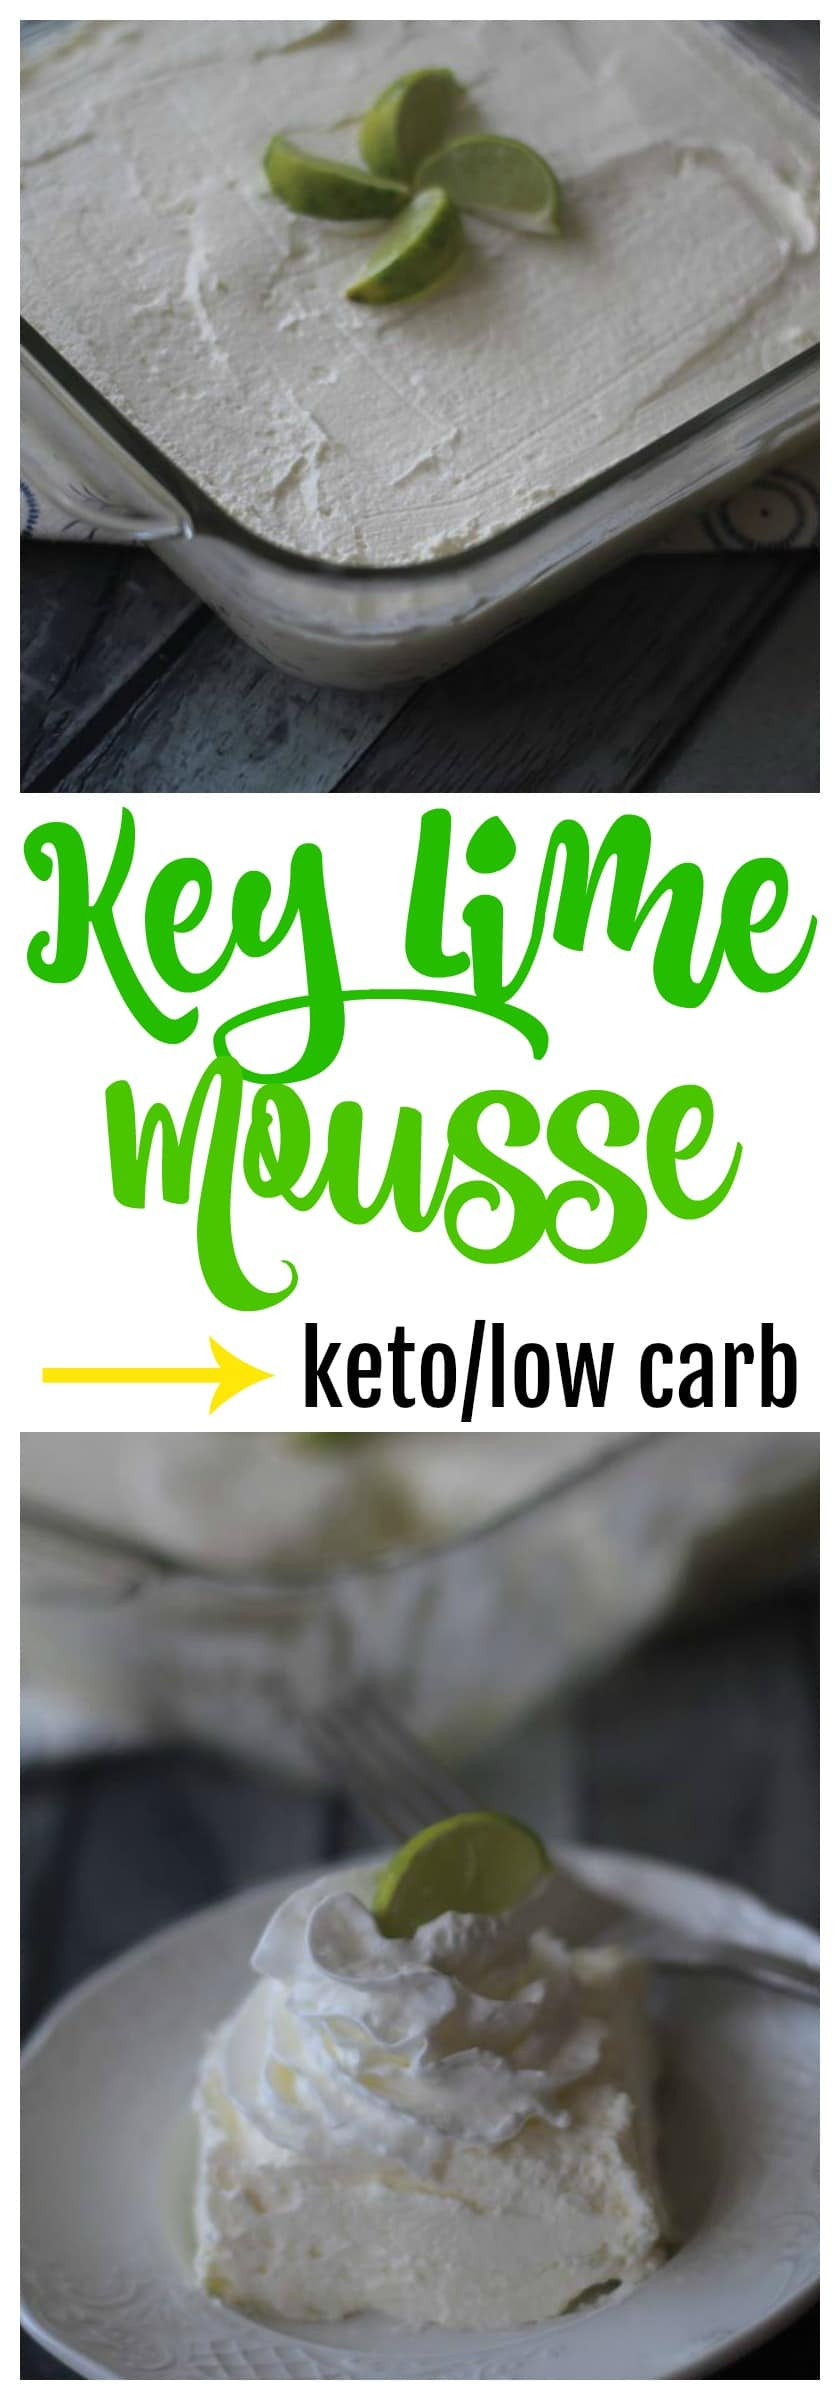 Are Limes Ok On Keto Diet  Keto Low Carb Key Lime Mousse Dessert Keto & Low Carb